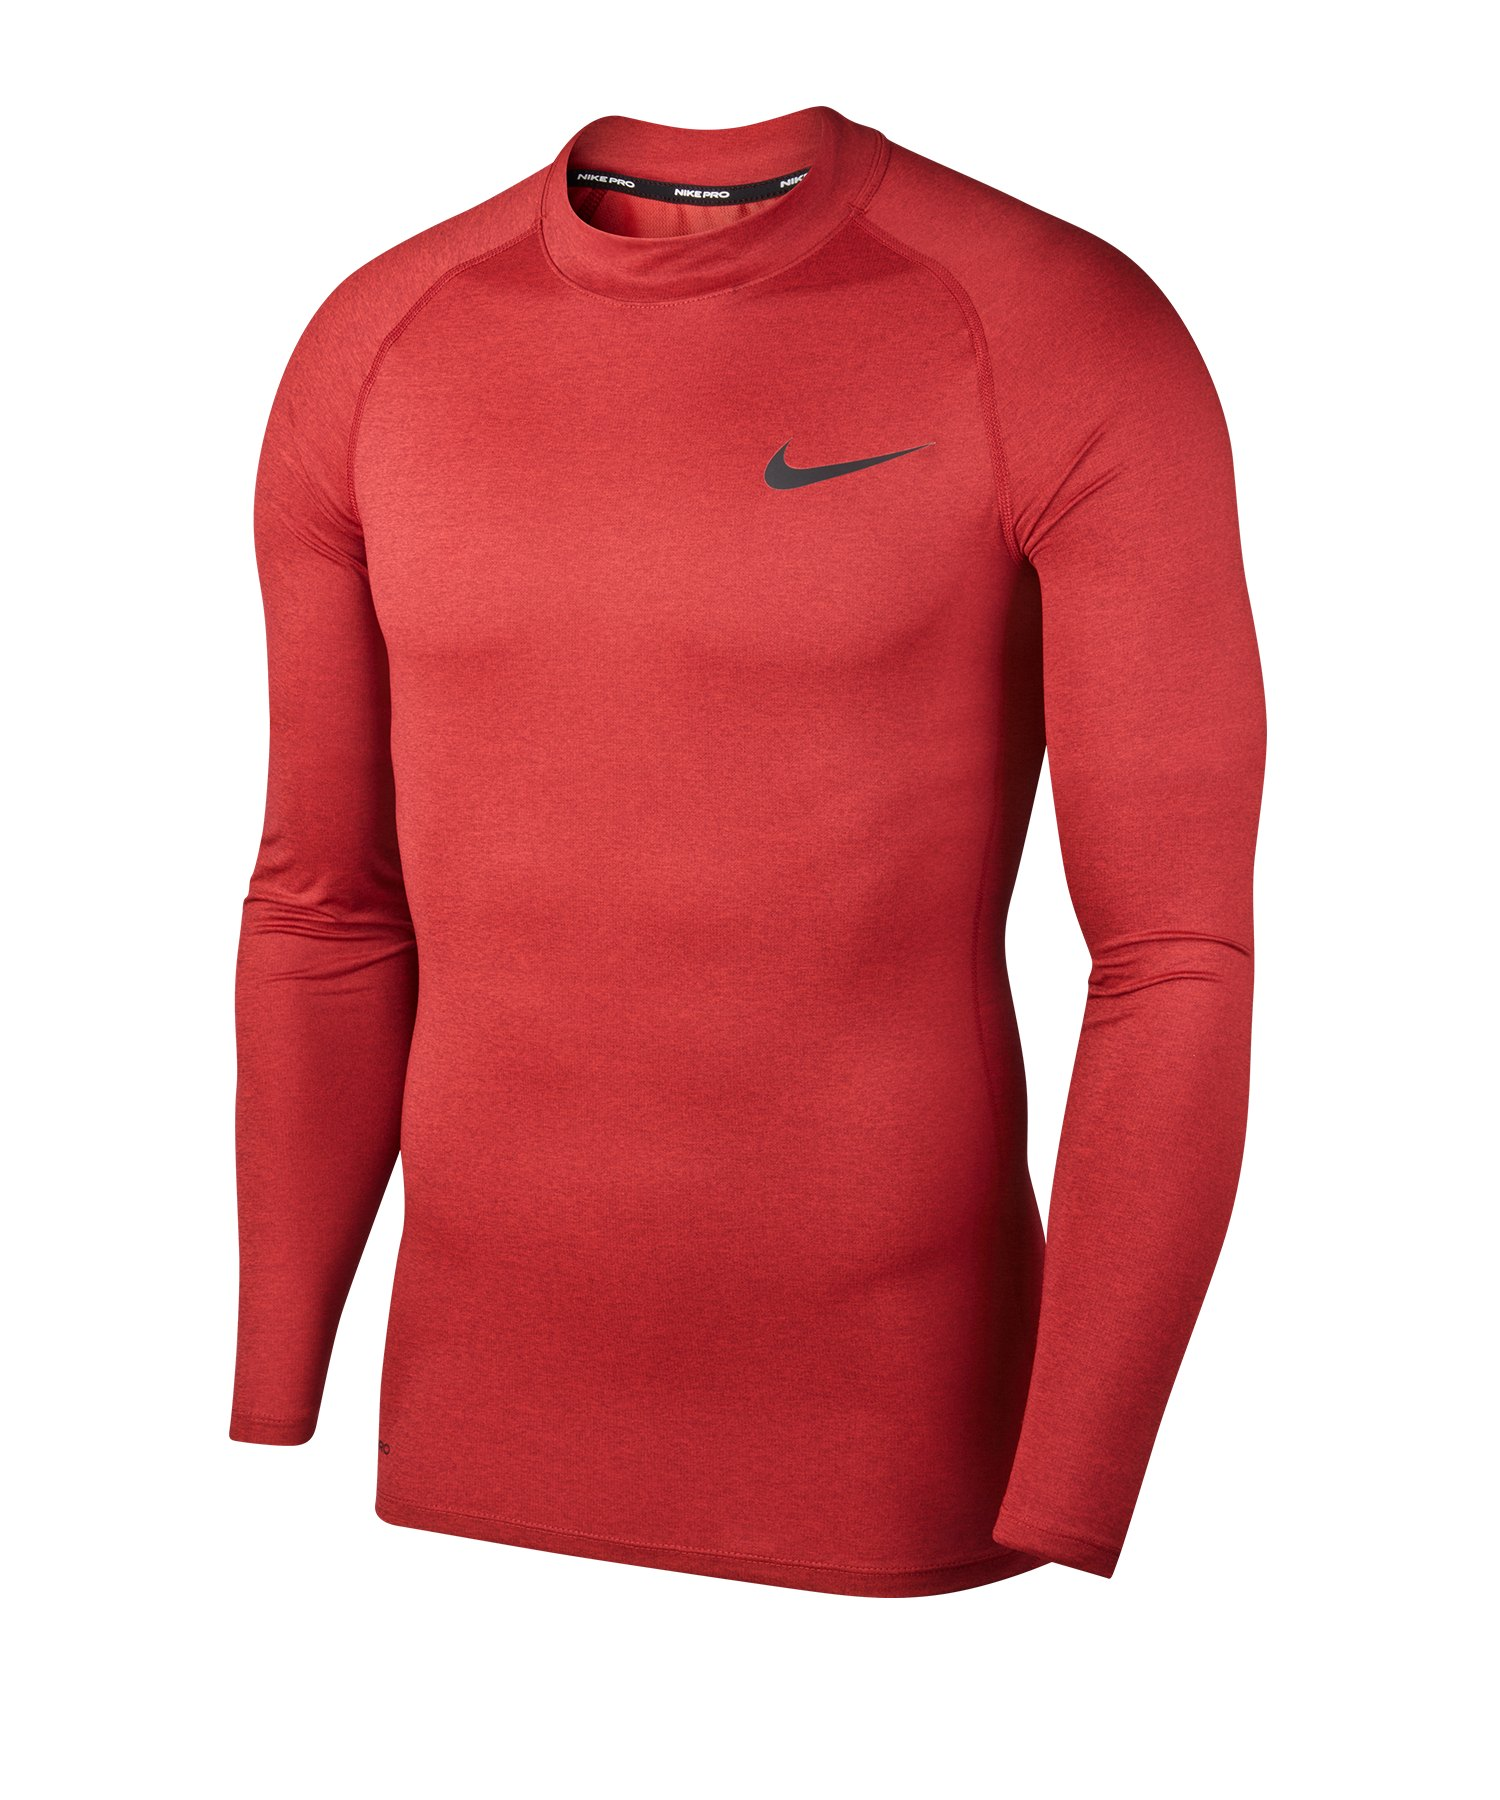 Nike Pro Training Top Mock langarm Rot F681 - rot